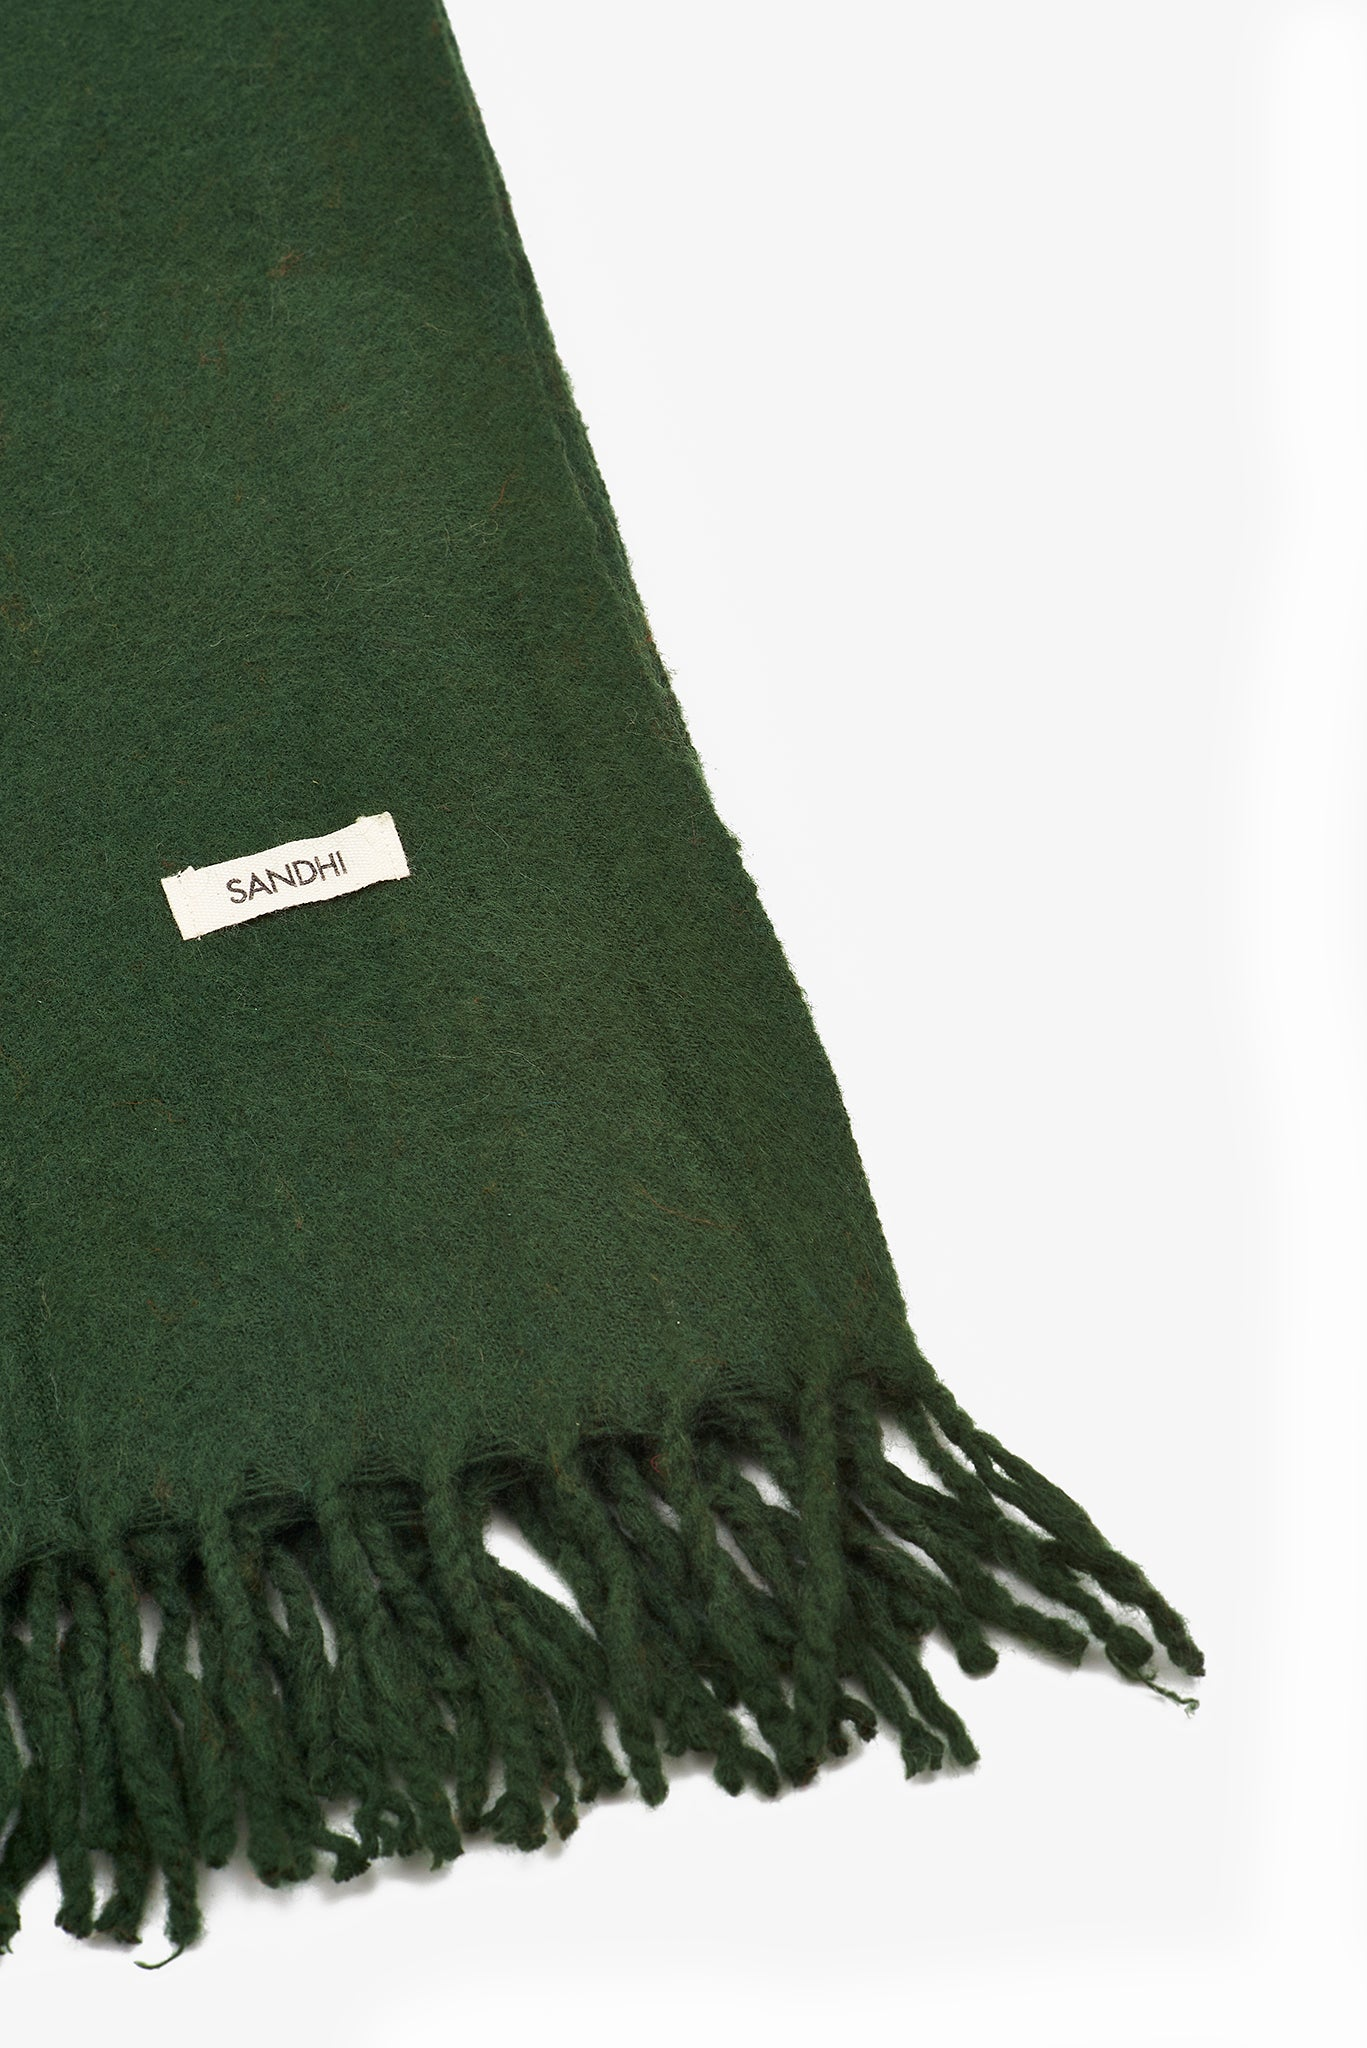 Lambswool Green Scarf Womens Wraps | Sandhi